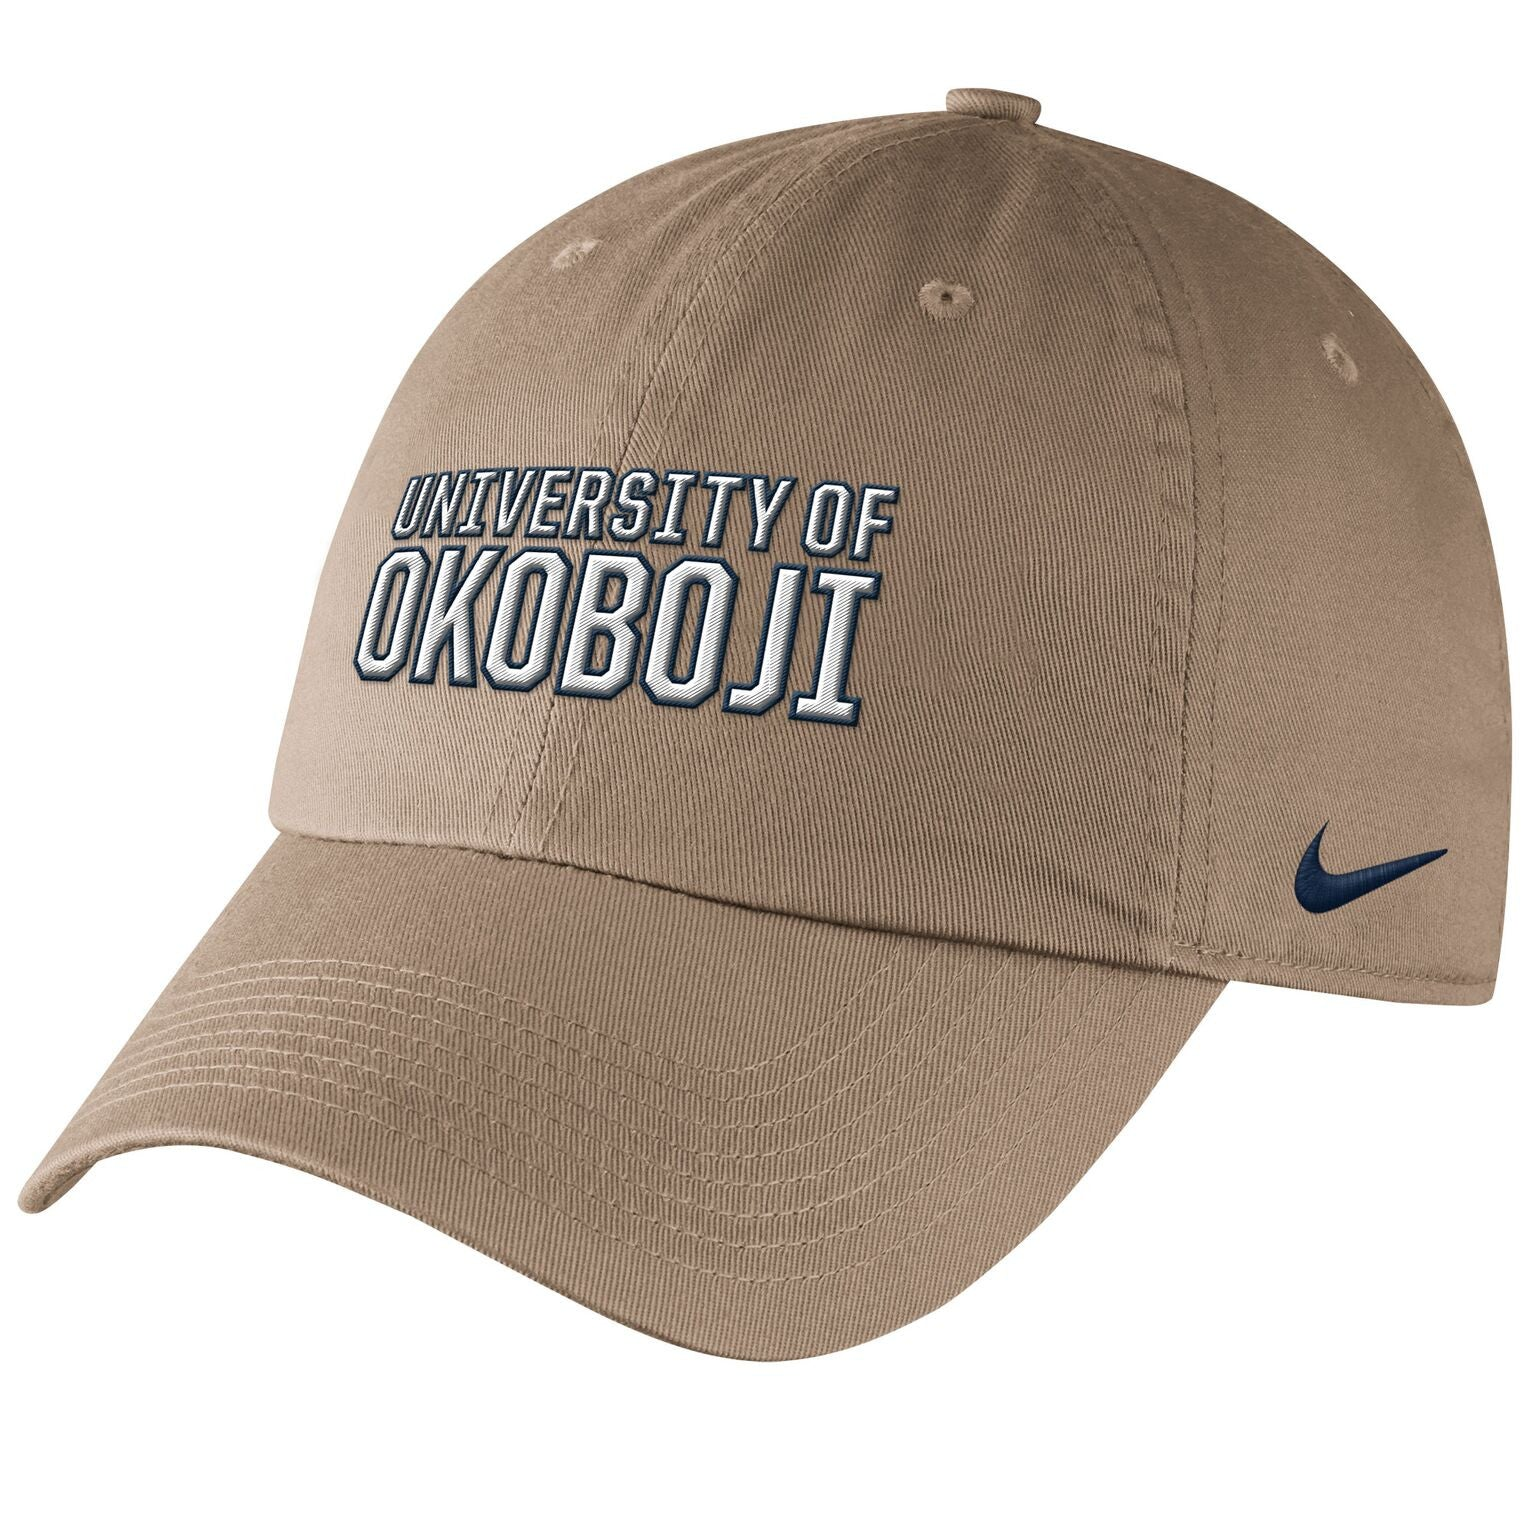 Univeristy of Okoboji Campus Cap - Khaki